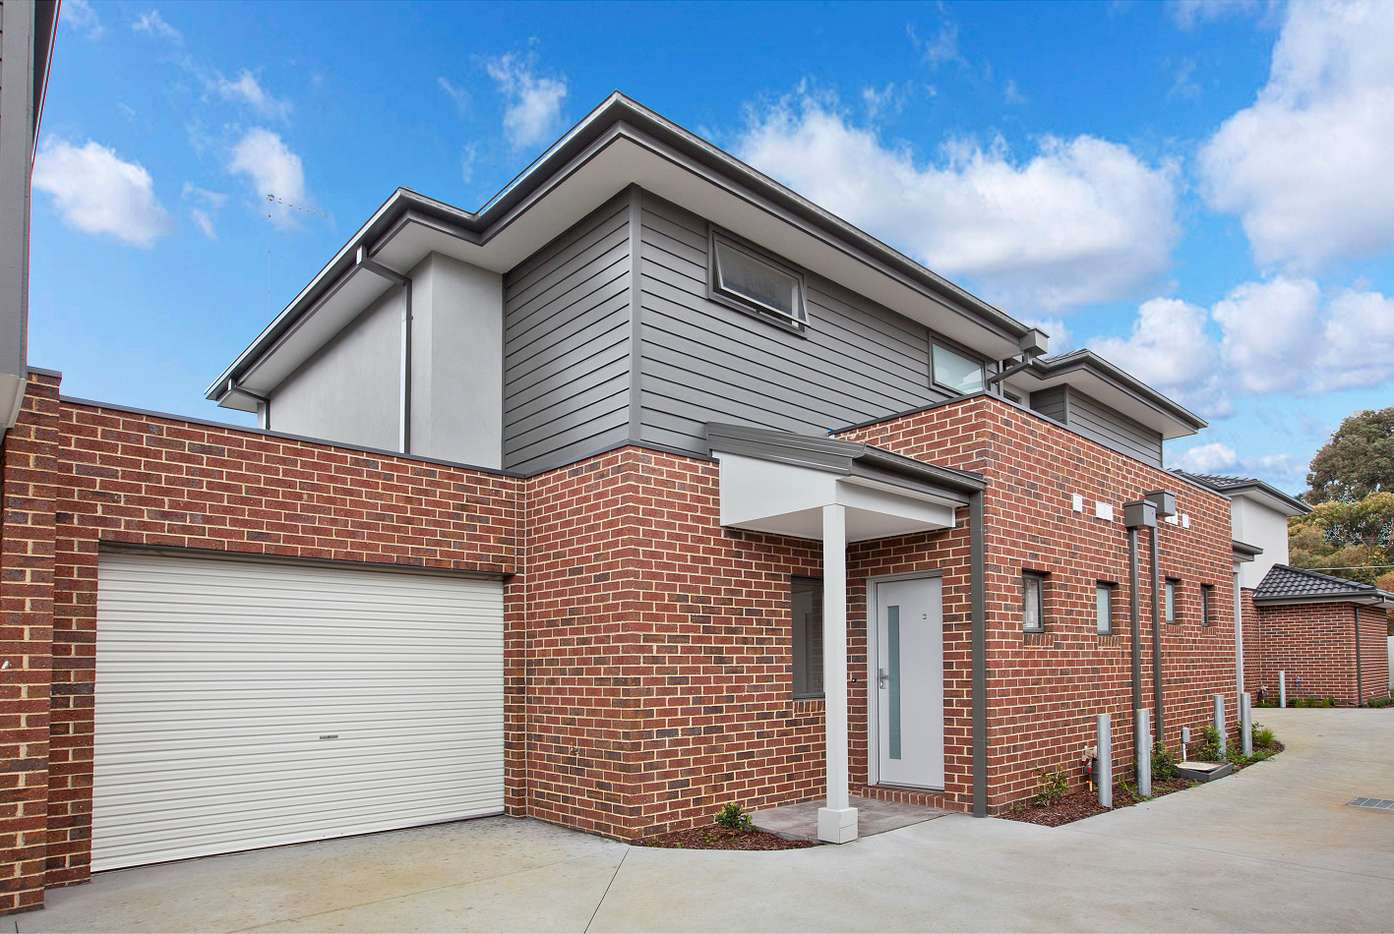 Main view of Homely townhouse listing, 3/7 Dundee Street, Reservoir, VIC 3073